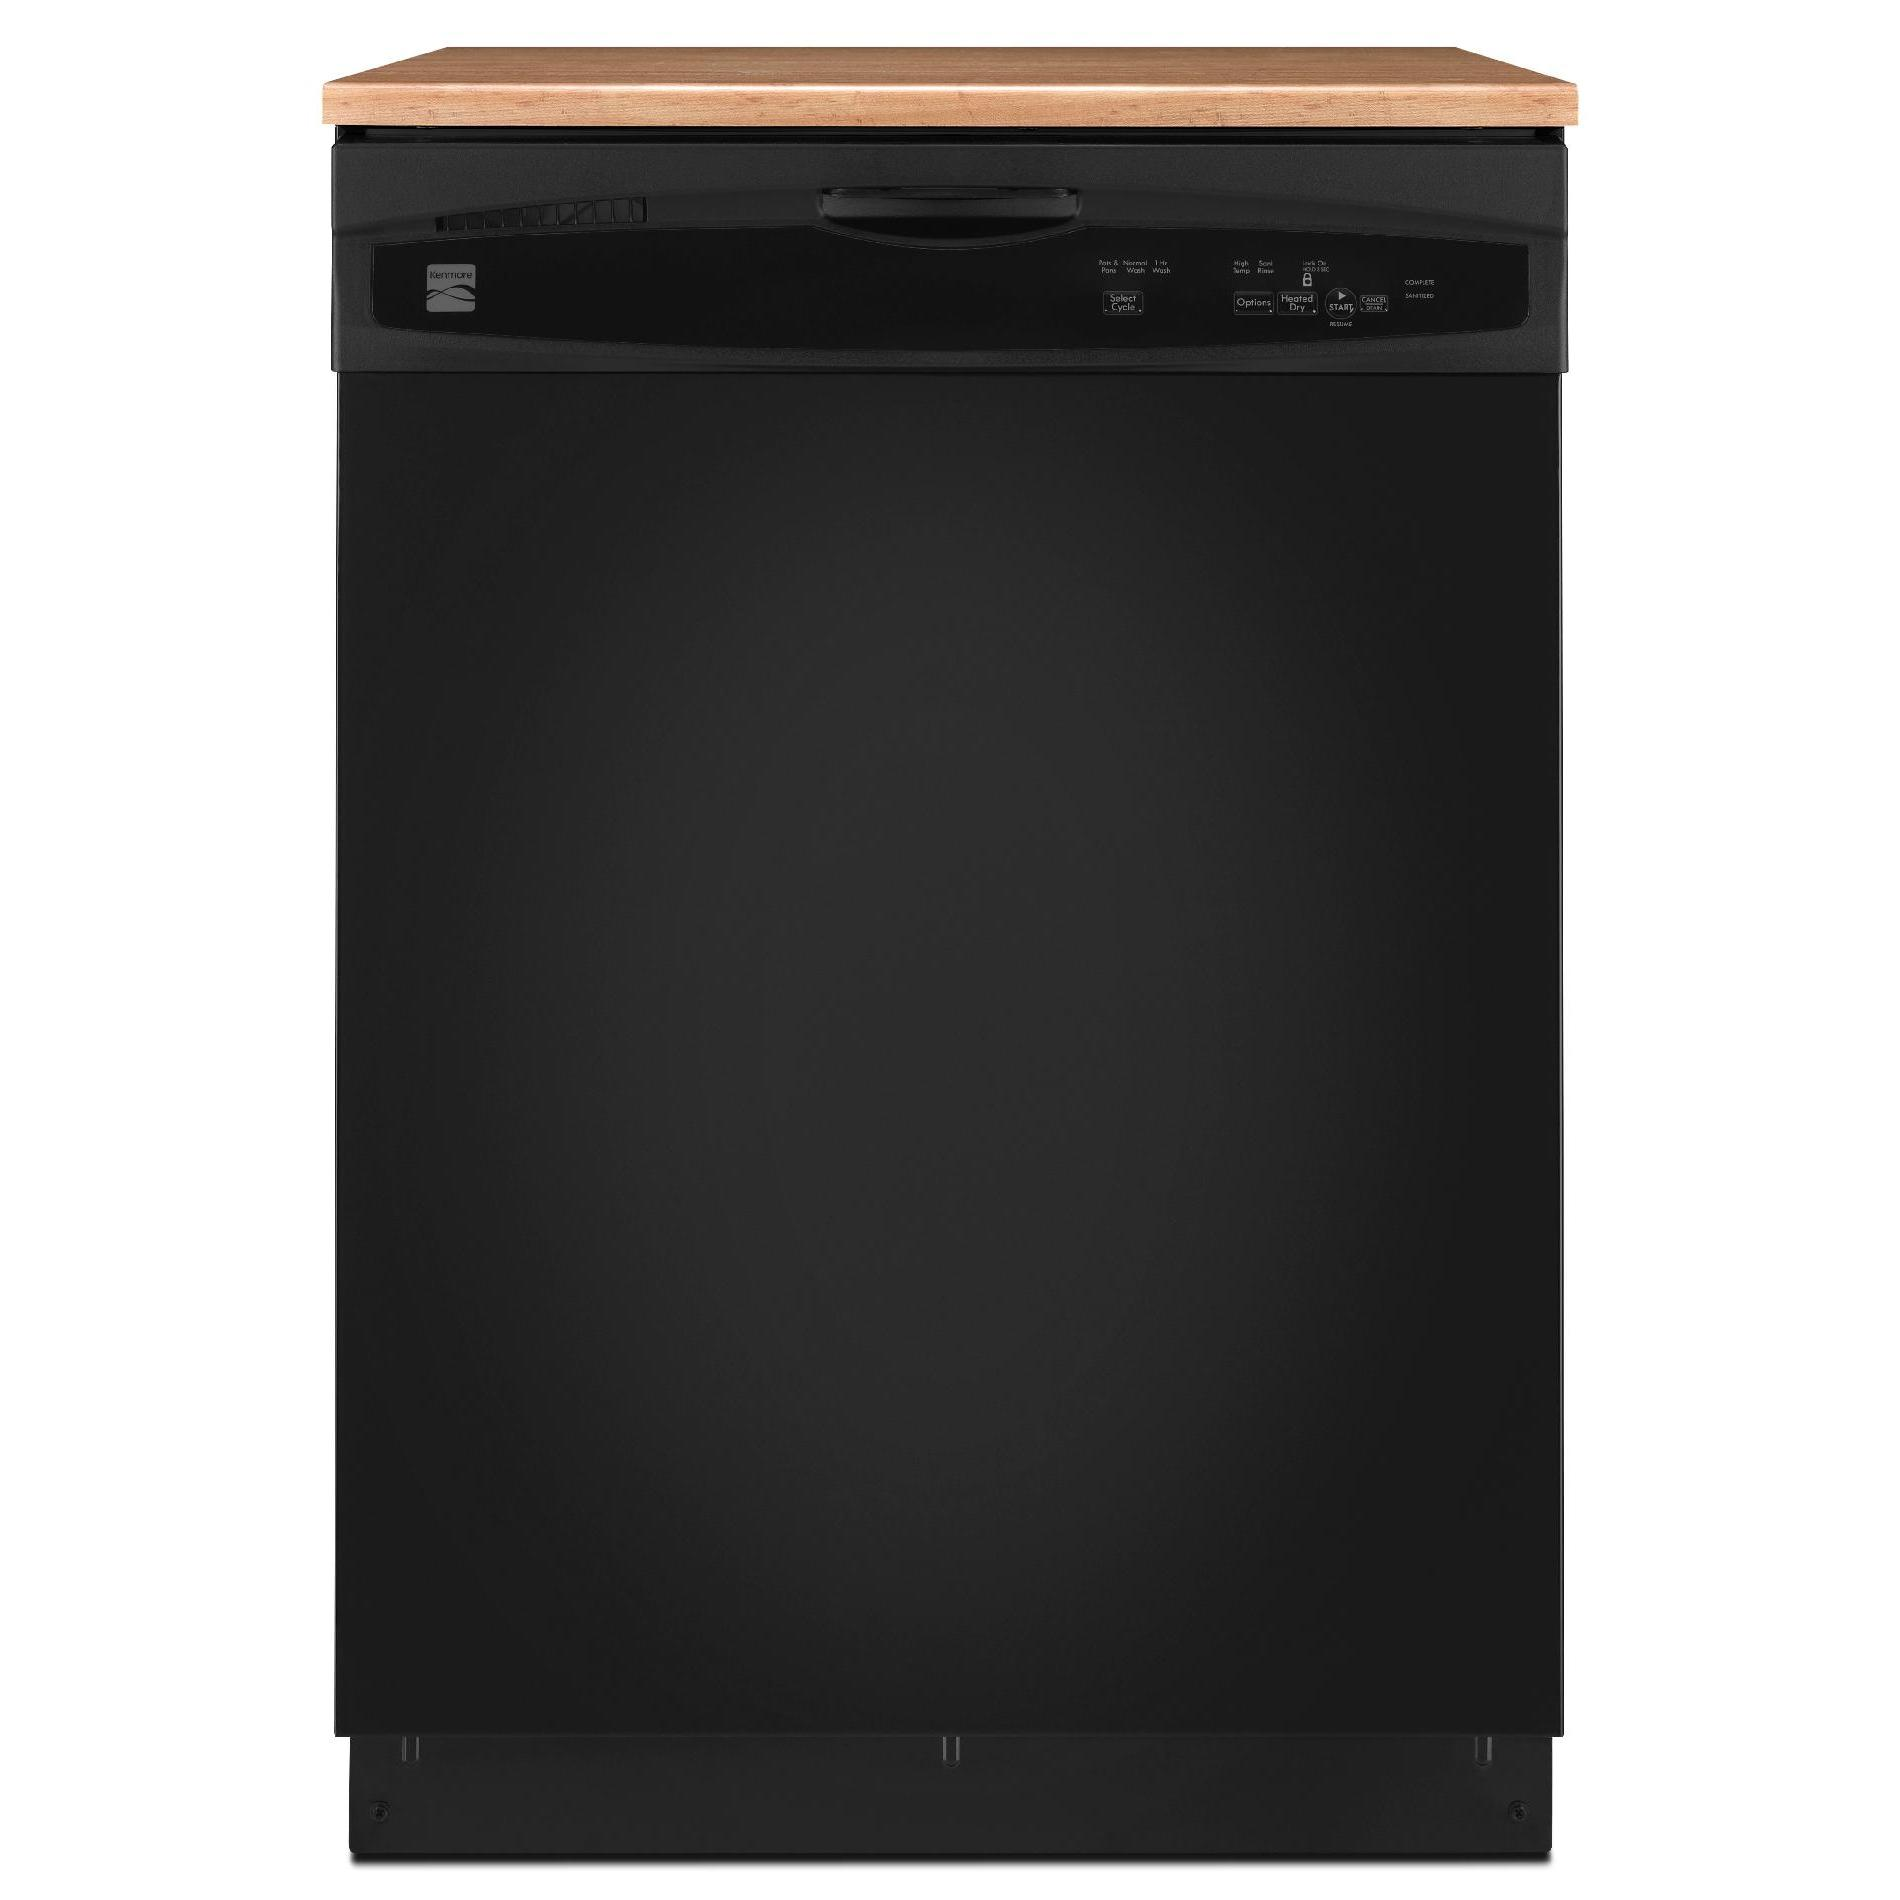 Dishwasher Dimensions Inches Kenmore 17159 24 Quot Portable Dishwasher Black